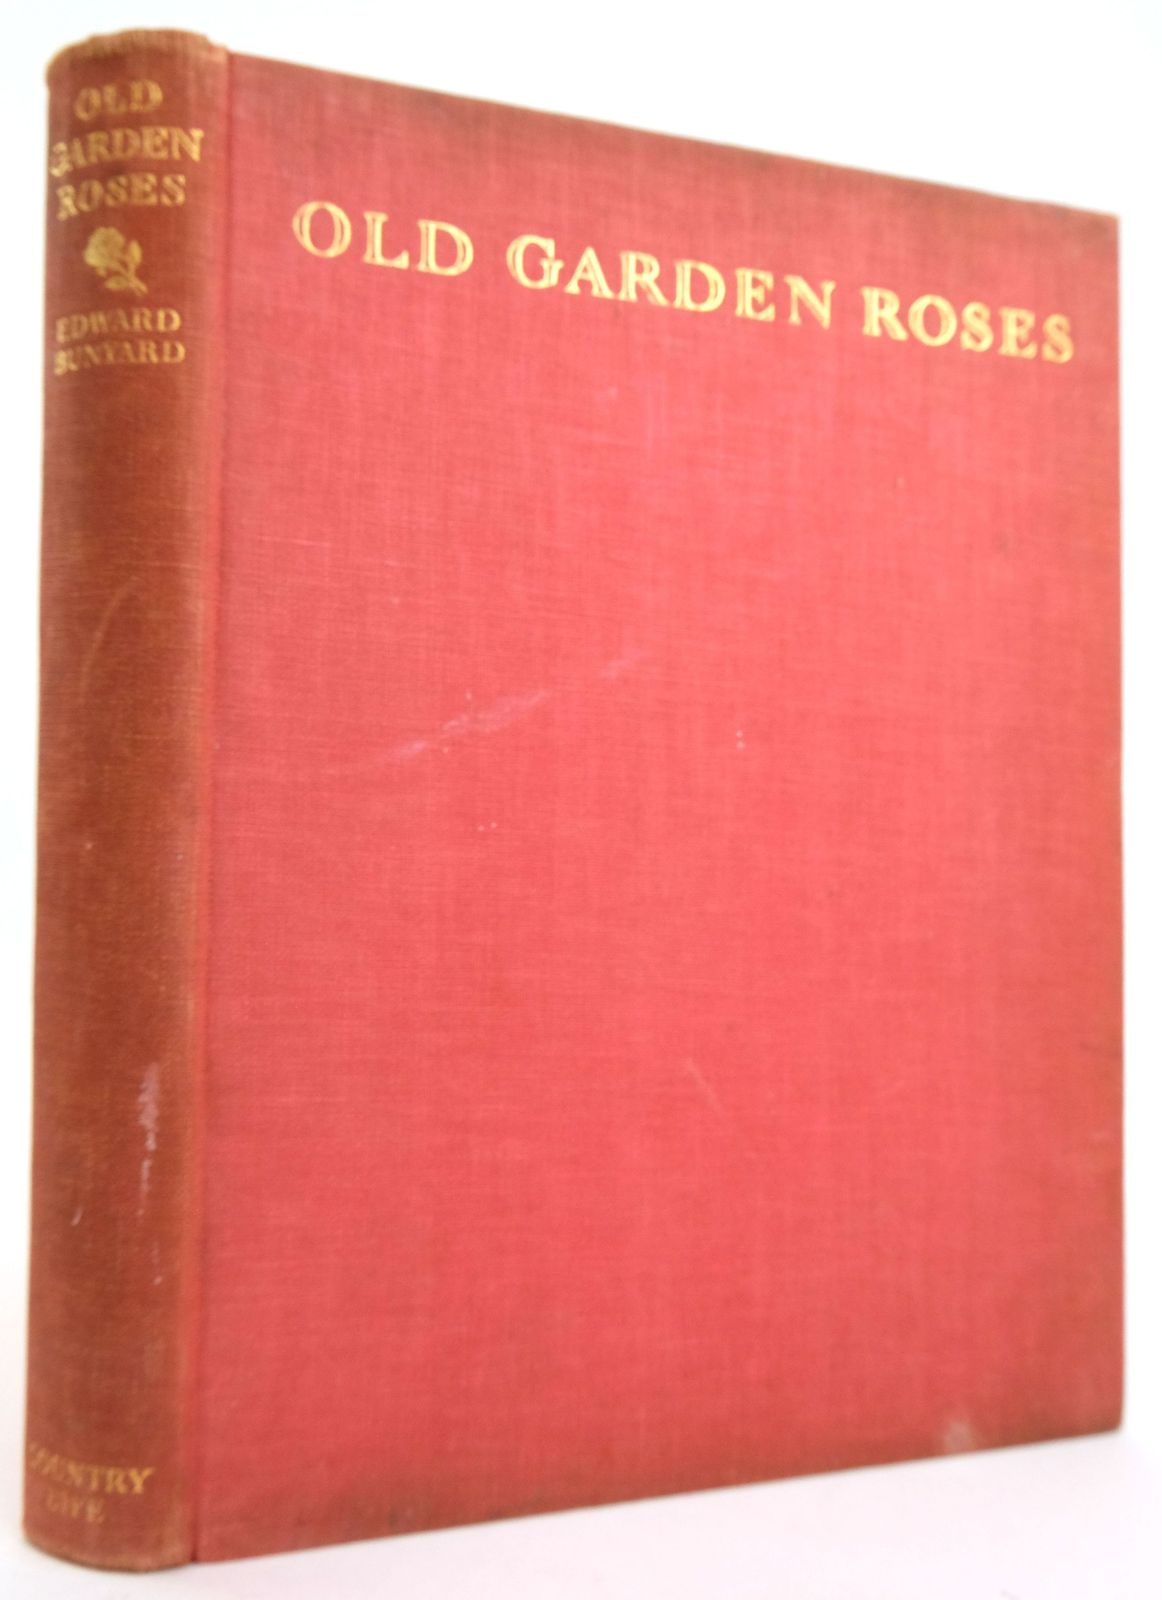 Photo of OLD GARDEN ROSES written by Bunyard, Edward A. published by Country Life (STOCK CODE: 1820175)  for sale by Stella & Rose's Books